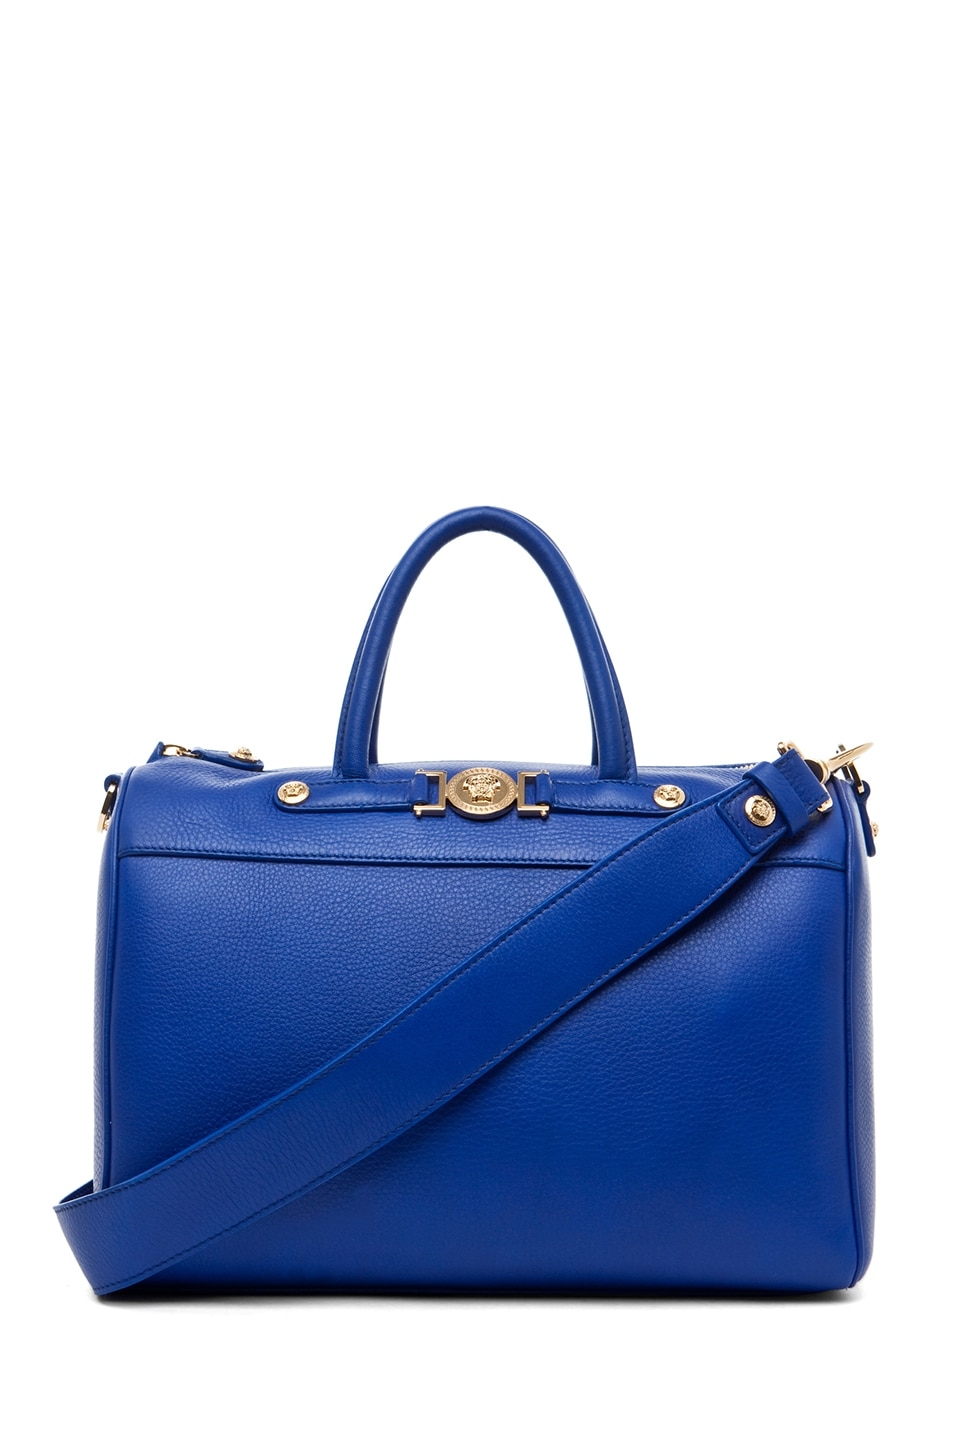 Image 1 of VERSACE Calf Leather Handbag in Blue